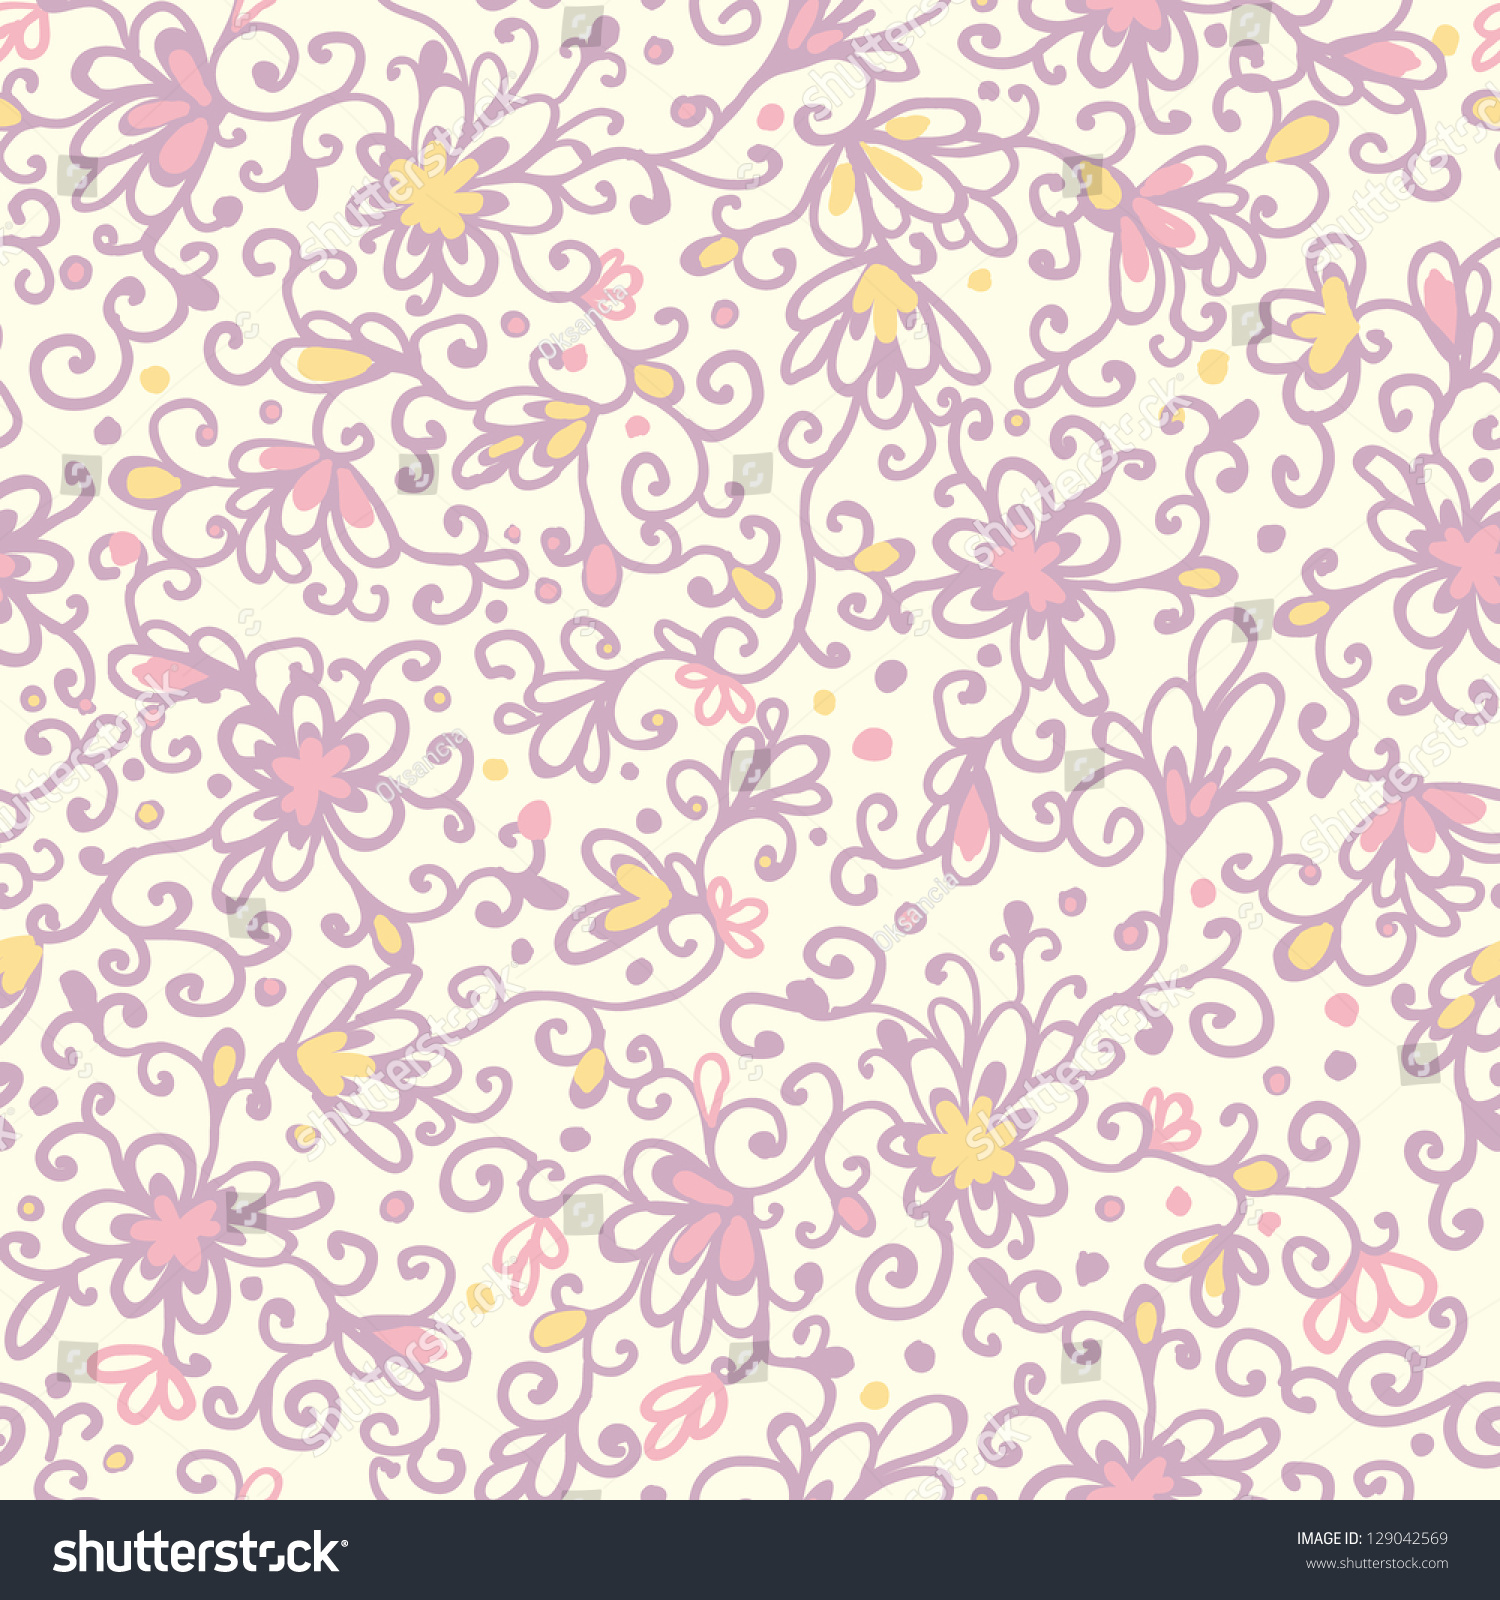 Abstract Floral Texture Seamless Pattern Background Stock ...